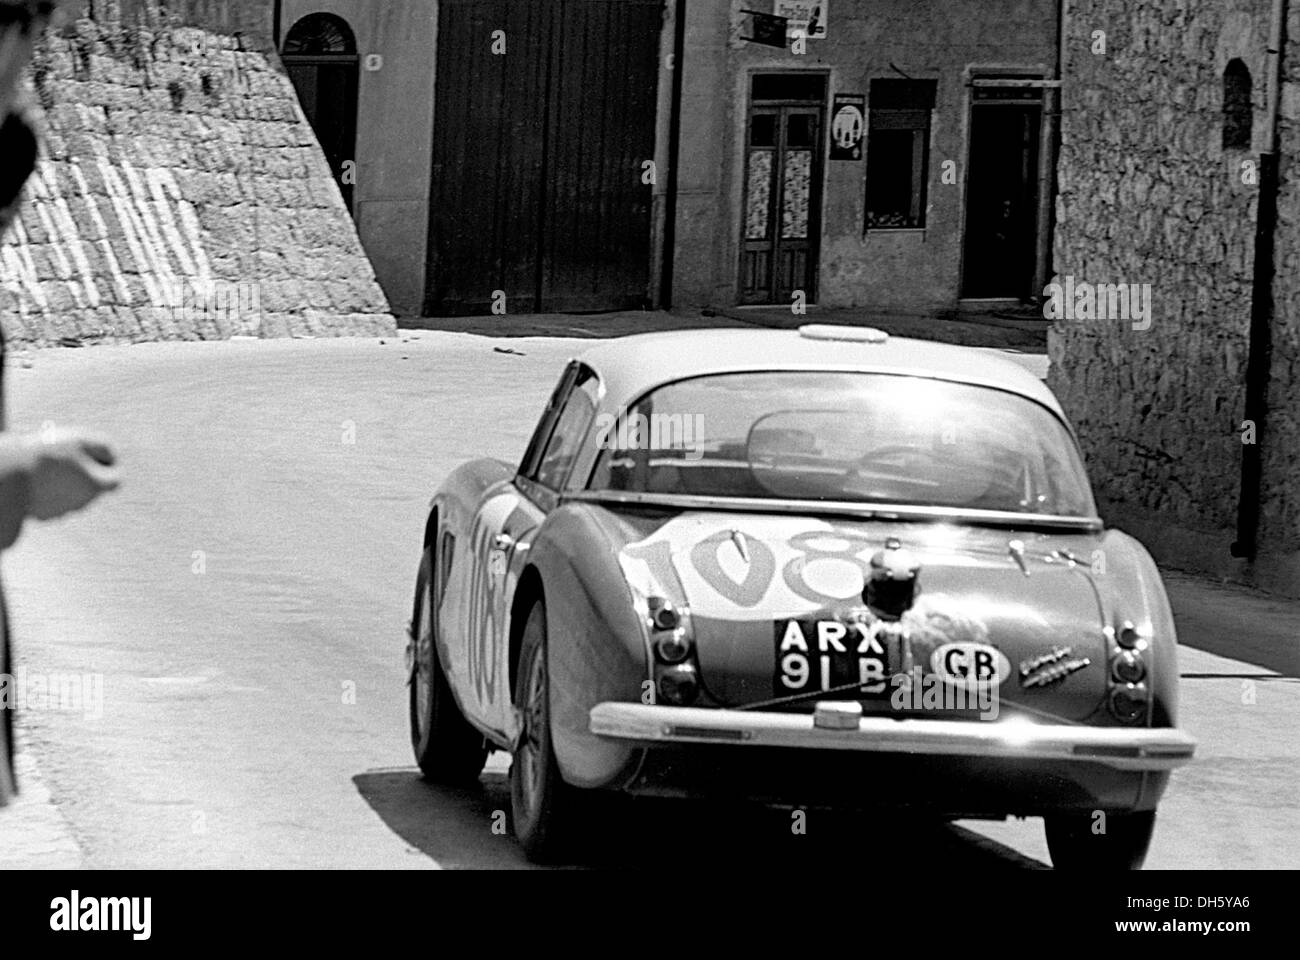 Timo Makinen-Paul Hawkins' Austin Healey 3000 Rennen durch Collesano in der Targa Florio, Sizilien 1965. Stockbild